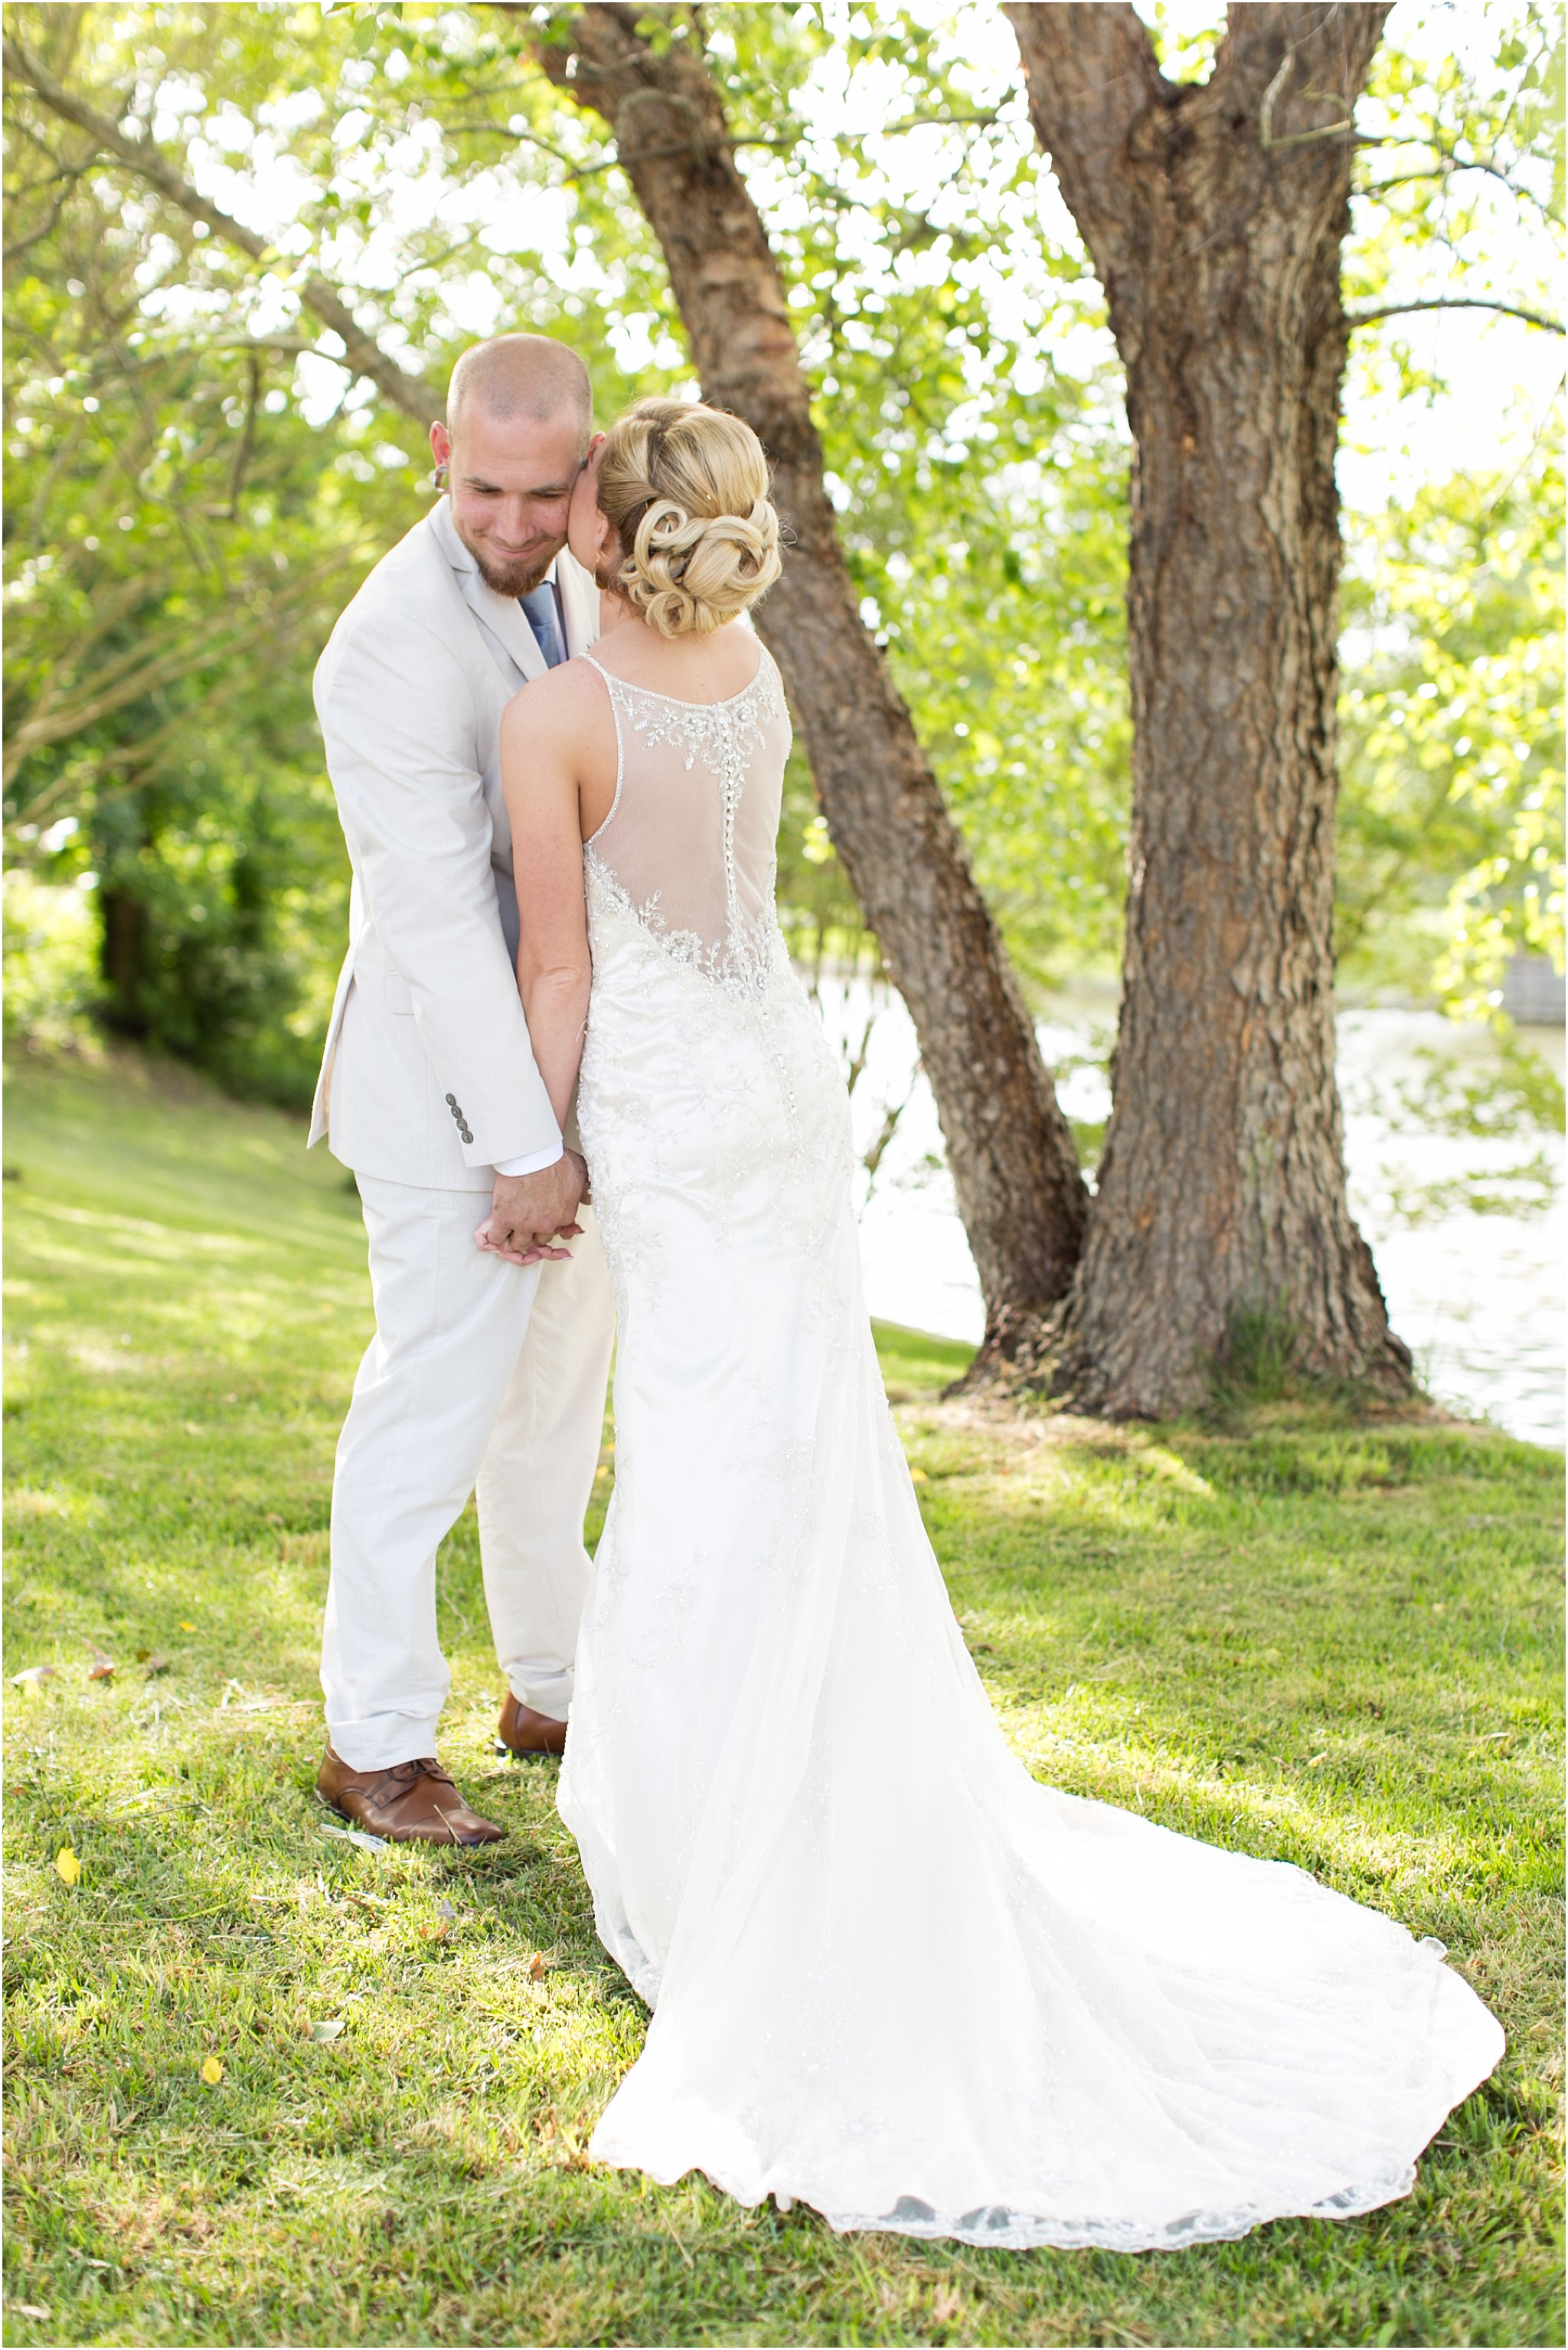 jessica_ryan_photography_virginia_virginiabeachweddingphotographer_studioIdo_backyardwedding_waterfrontwedding_1682